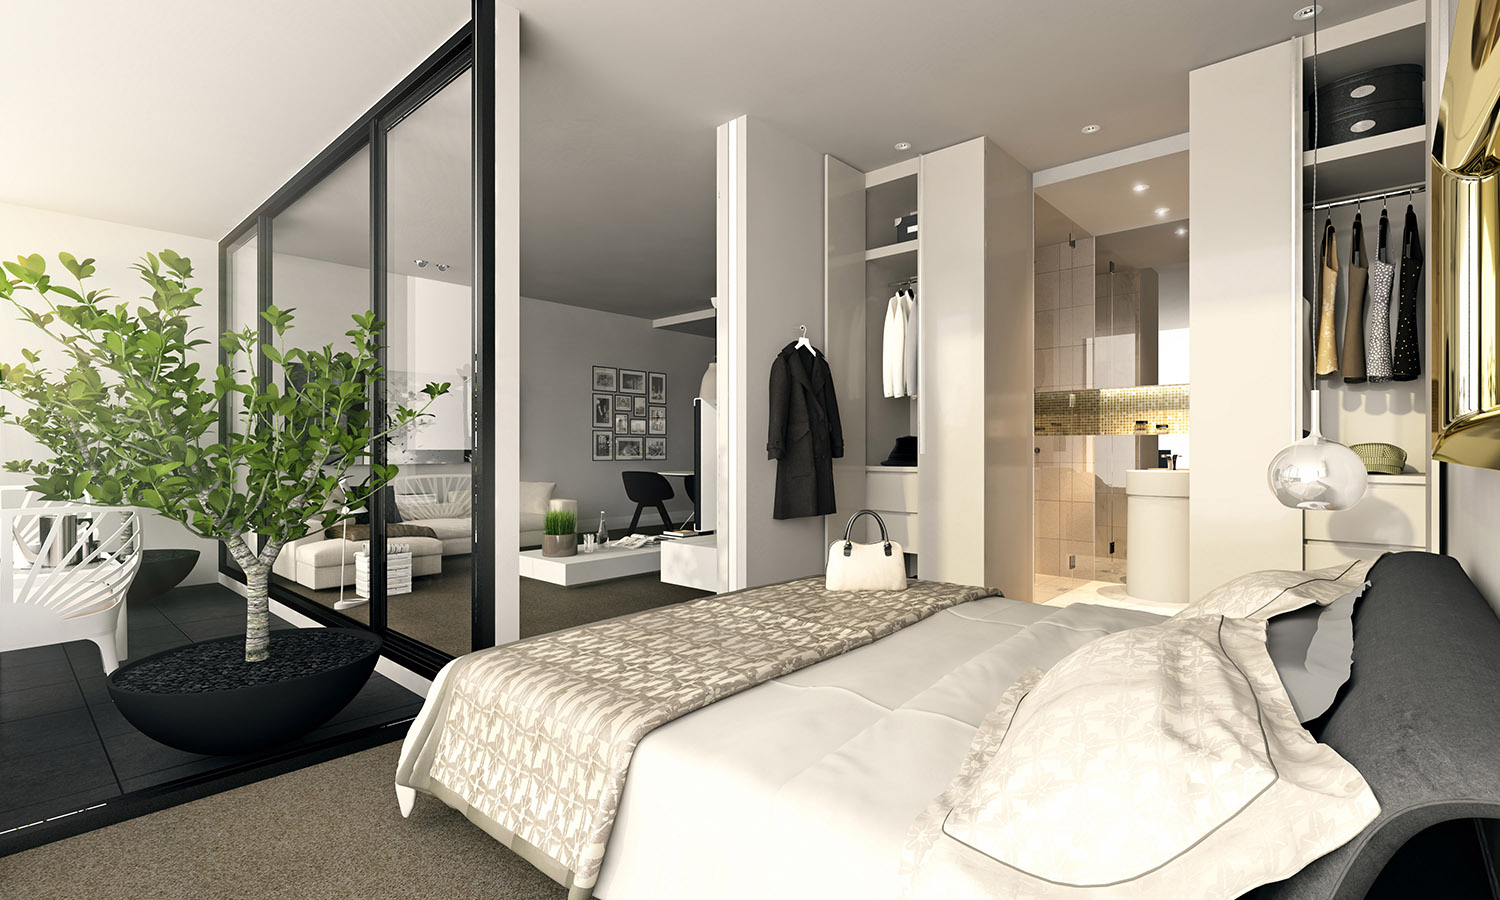 Studio apartment interiors inspiration for Modern apartment interior